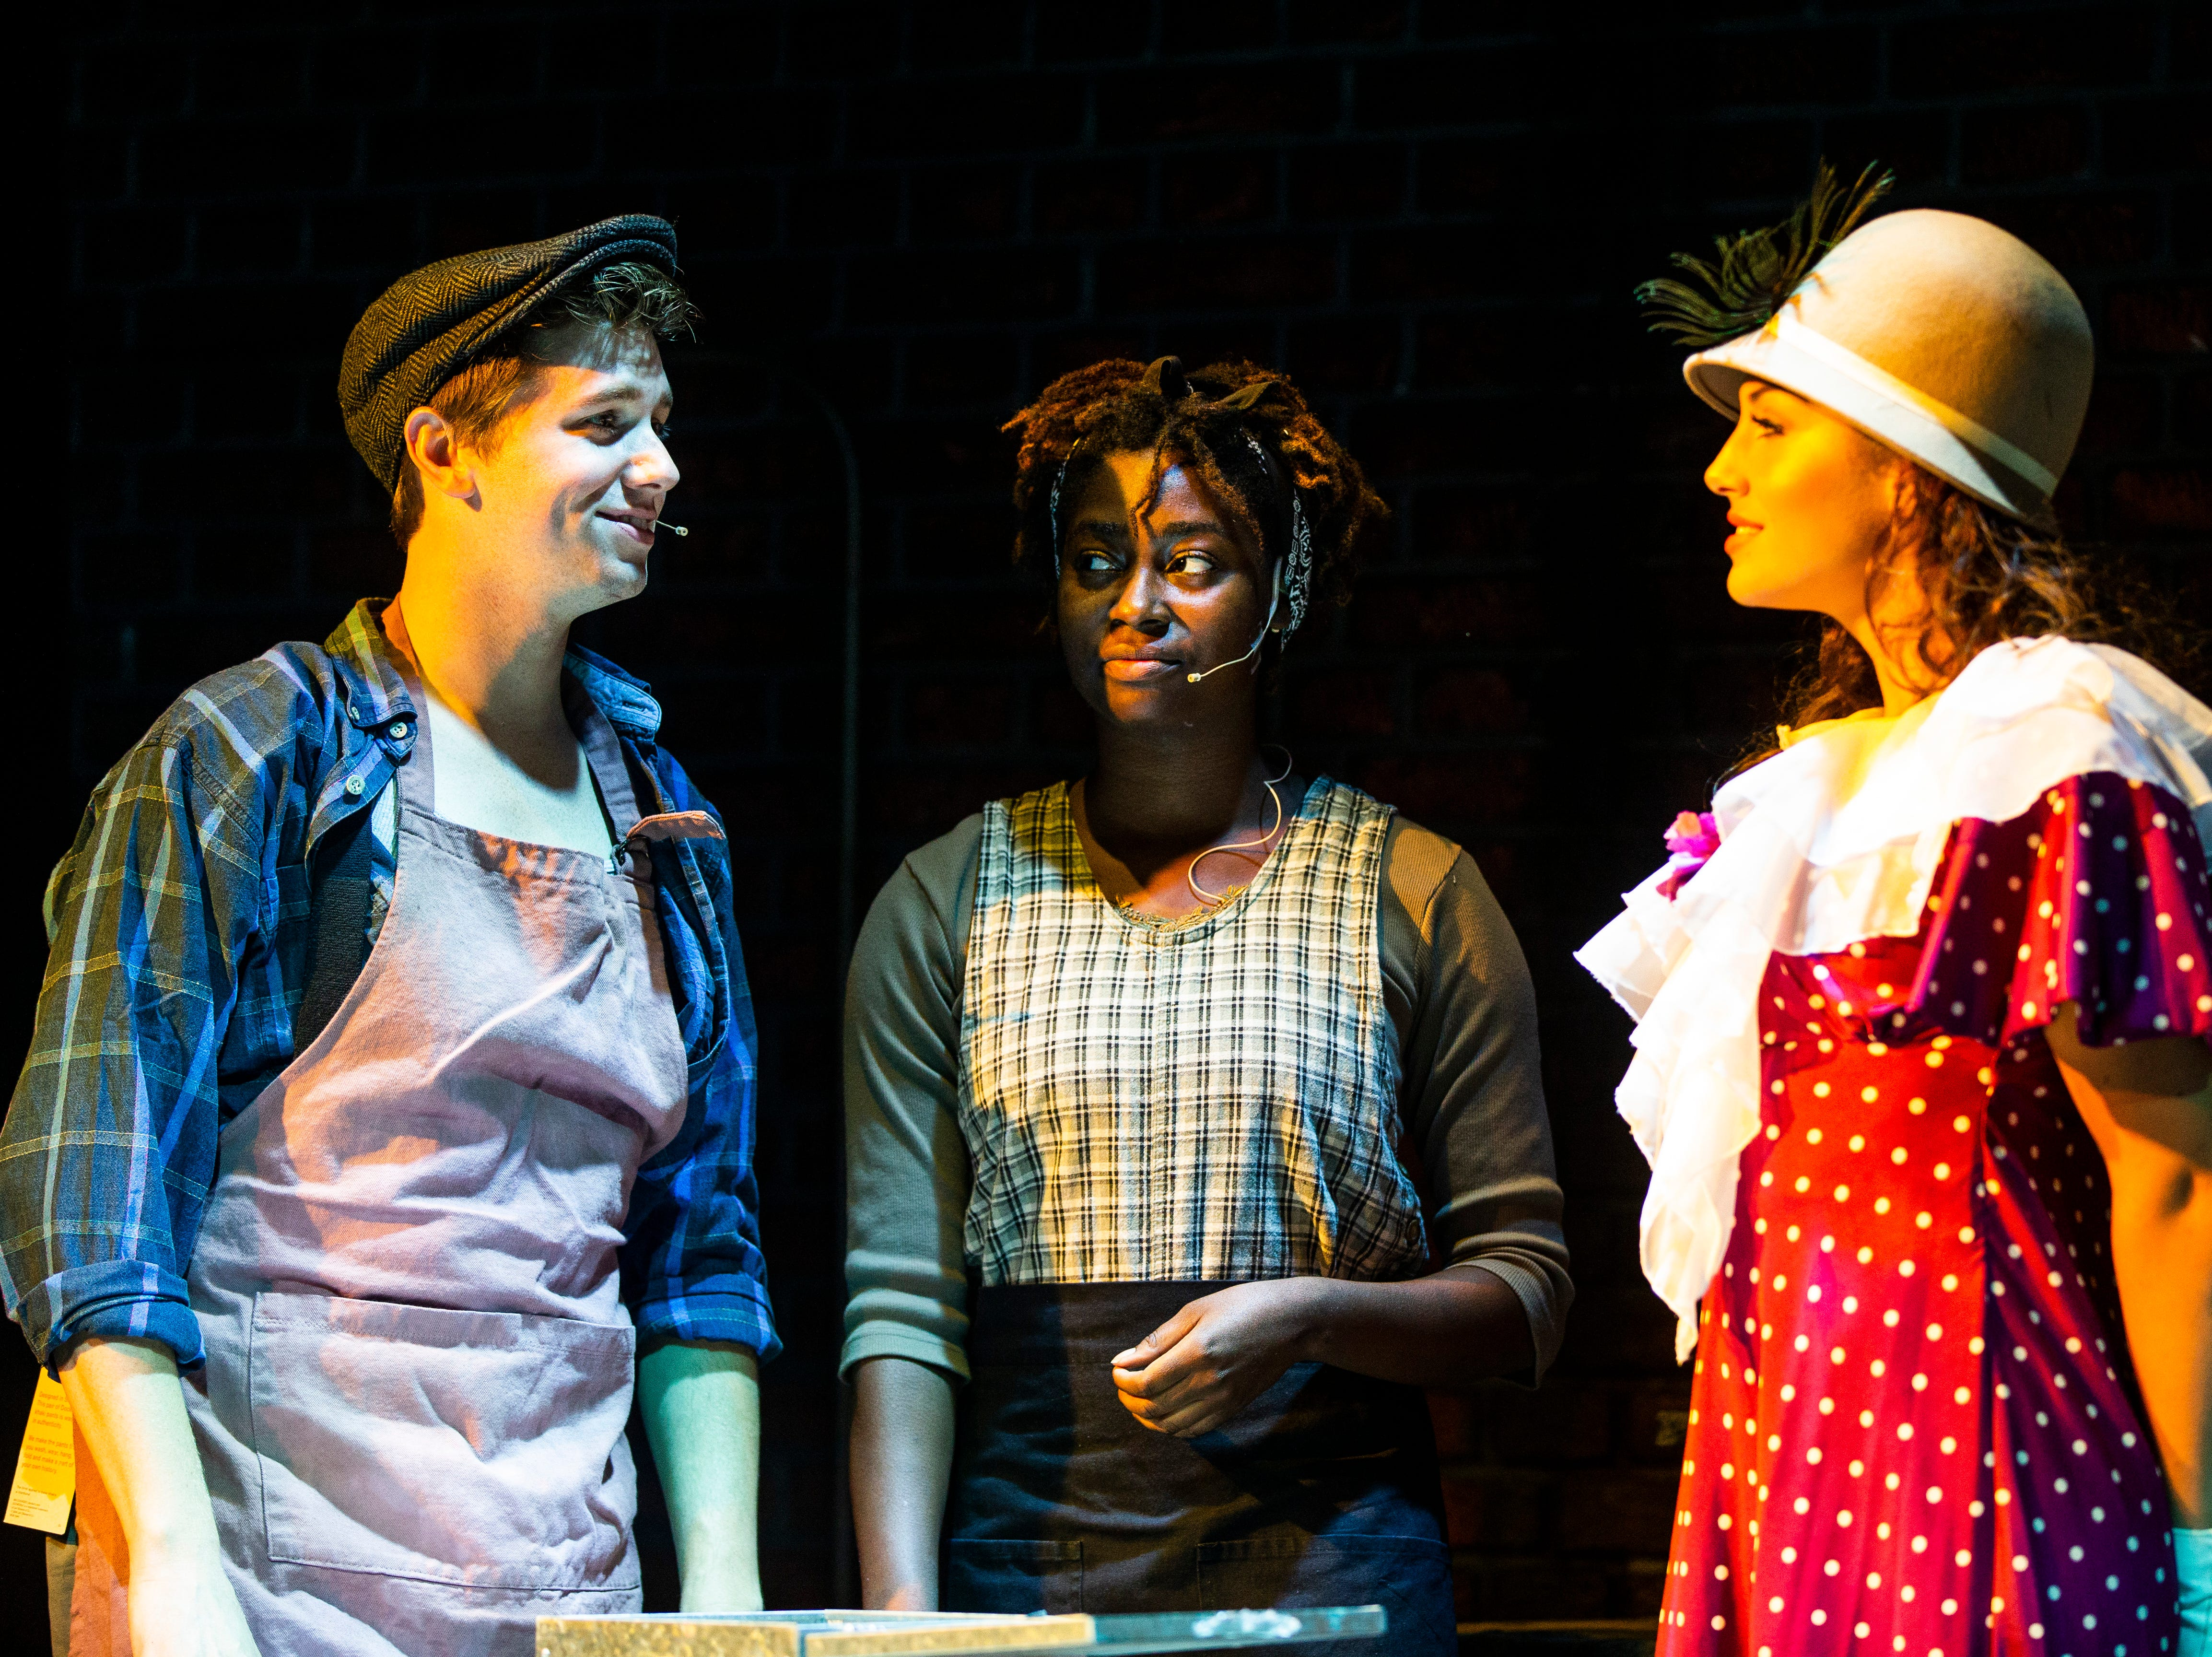 Christopher Lewis, from left, as Bobby Strong, Imani Williams, as Penelope Pennywise, and Julia Hajjar, as Hope Cladwell, rehearse a scene for TheatreZone's upcoming production of Urinetown in collaboration with Florida Gulf Coast University in Fort Myers on Monday, Oct. 8, 2018. Urinetown is a hilarious musical satire of the legal system, capitalism, social irresponsibility, populism, bureaucracy, corporate mismanagement, municipal politics and musical theatre itself.